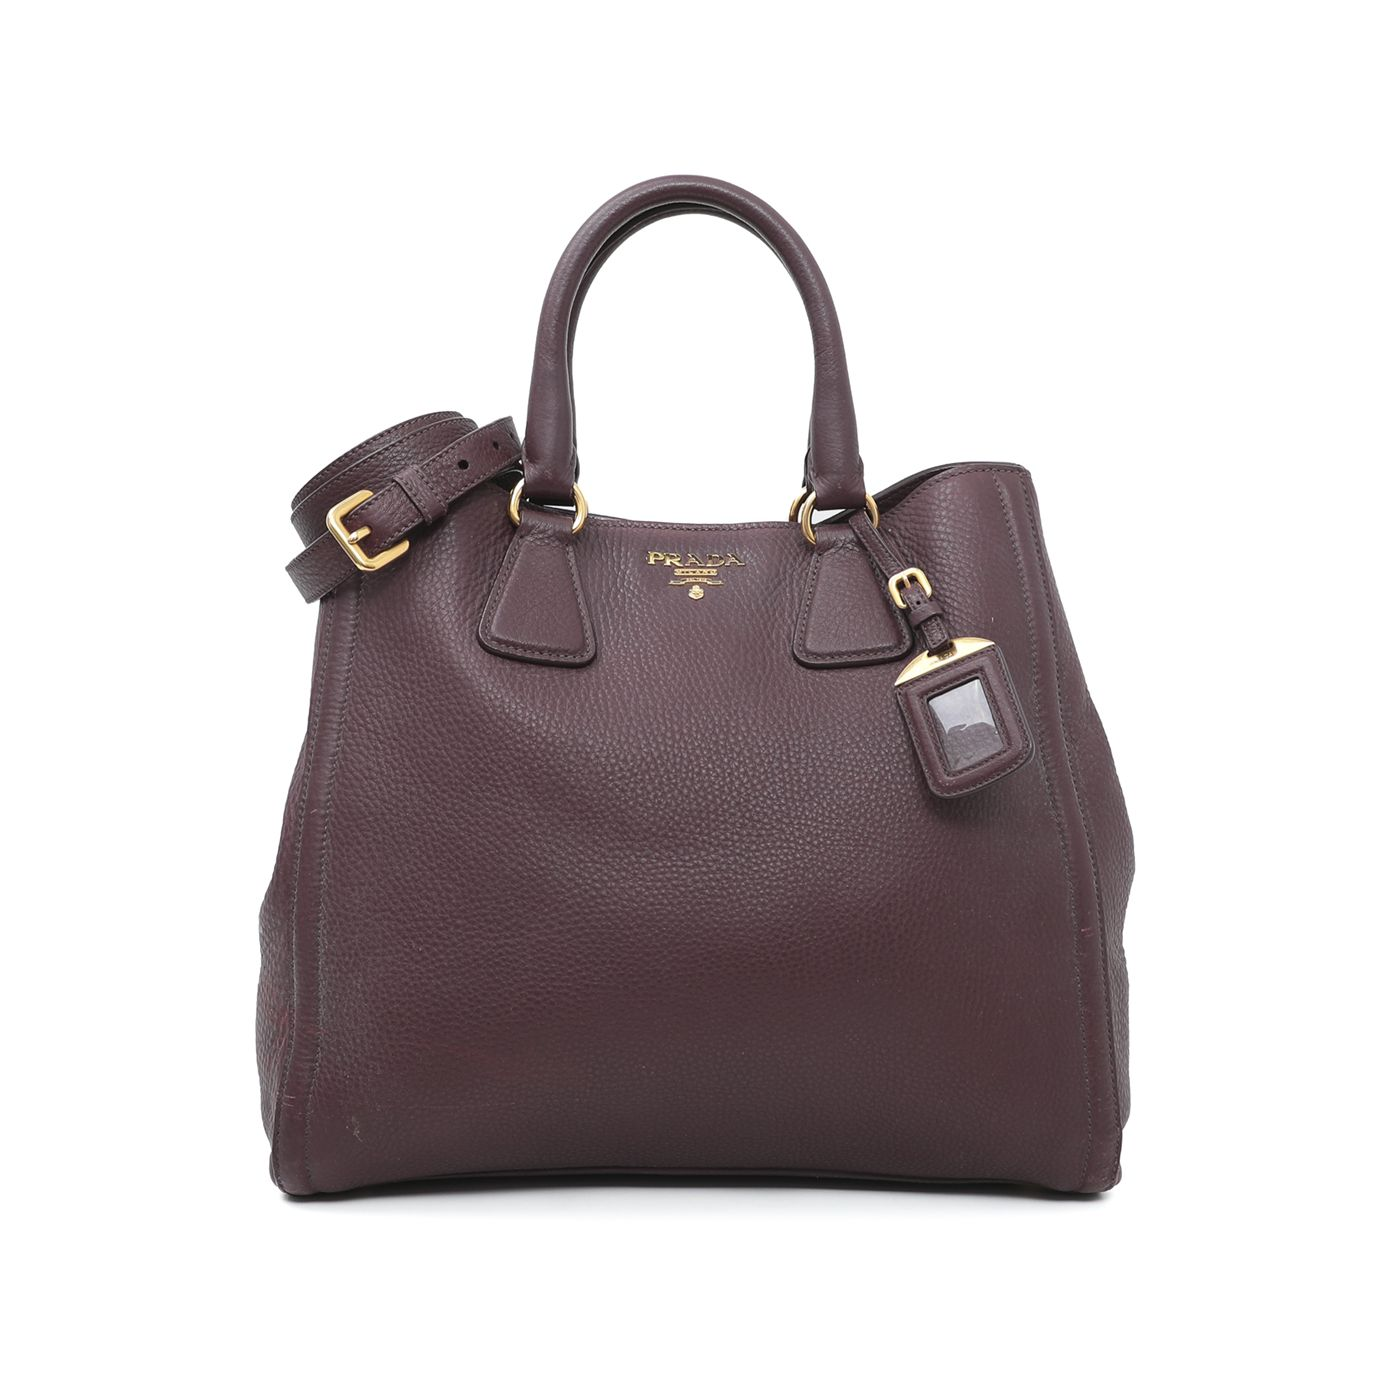 Prada Burgundy Vitello Daino Tote Bag